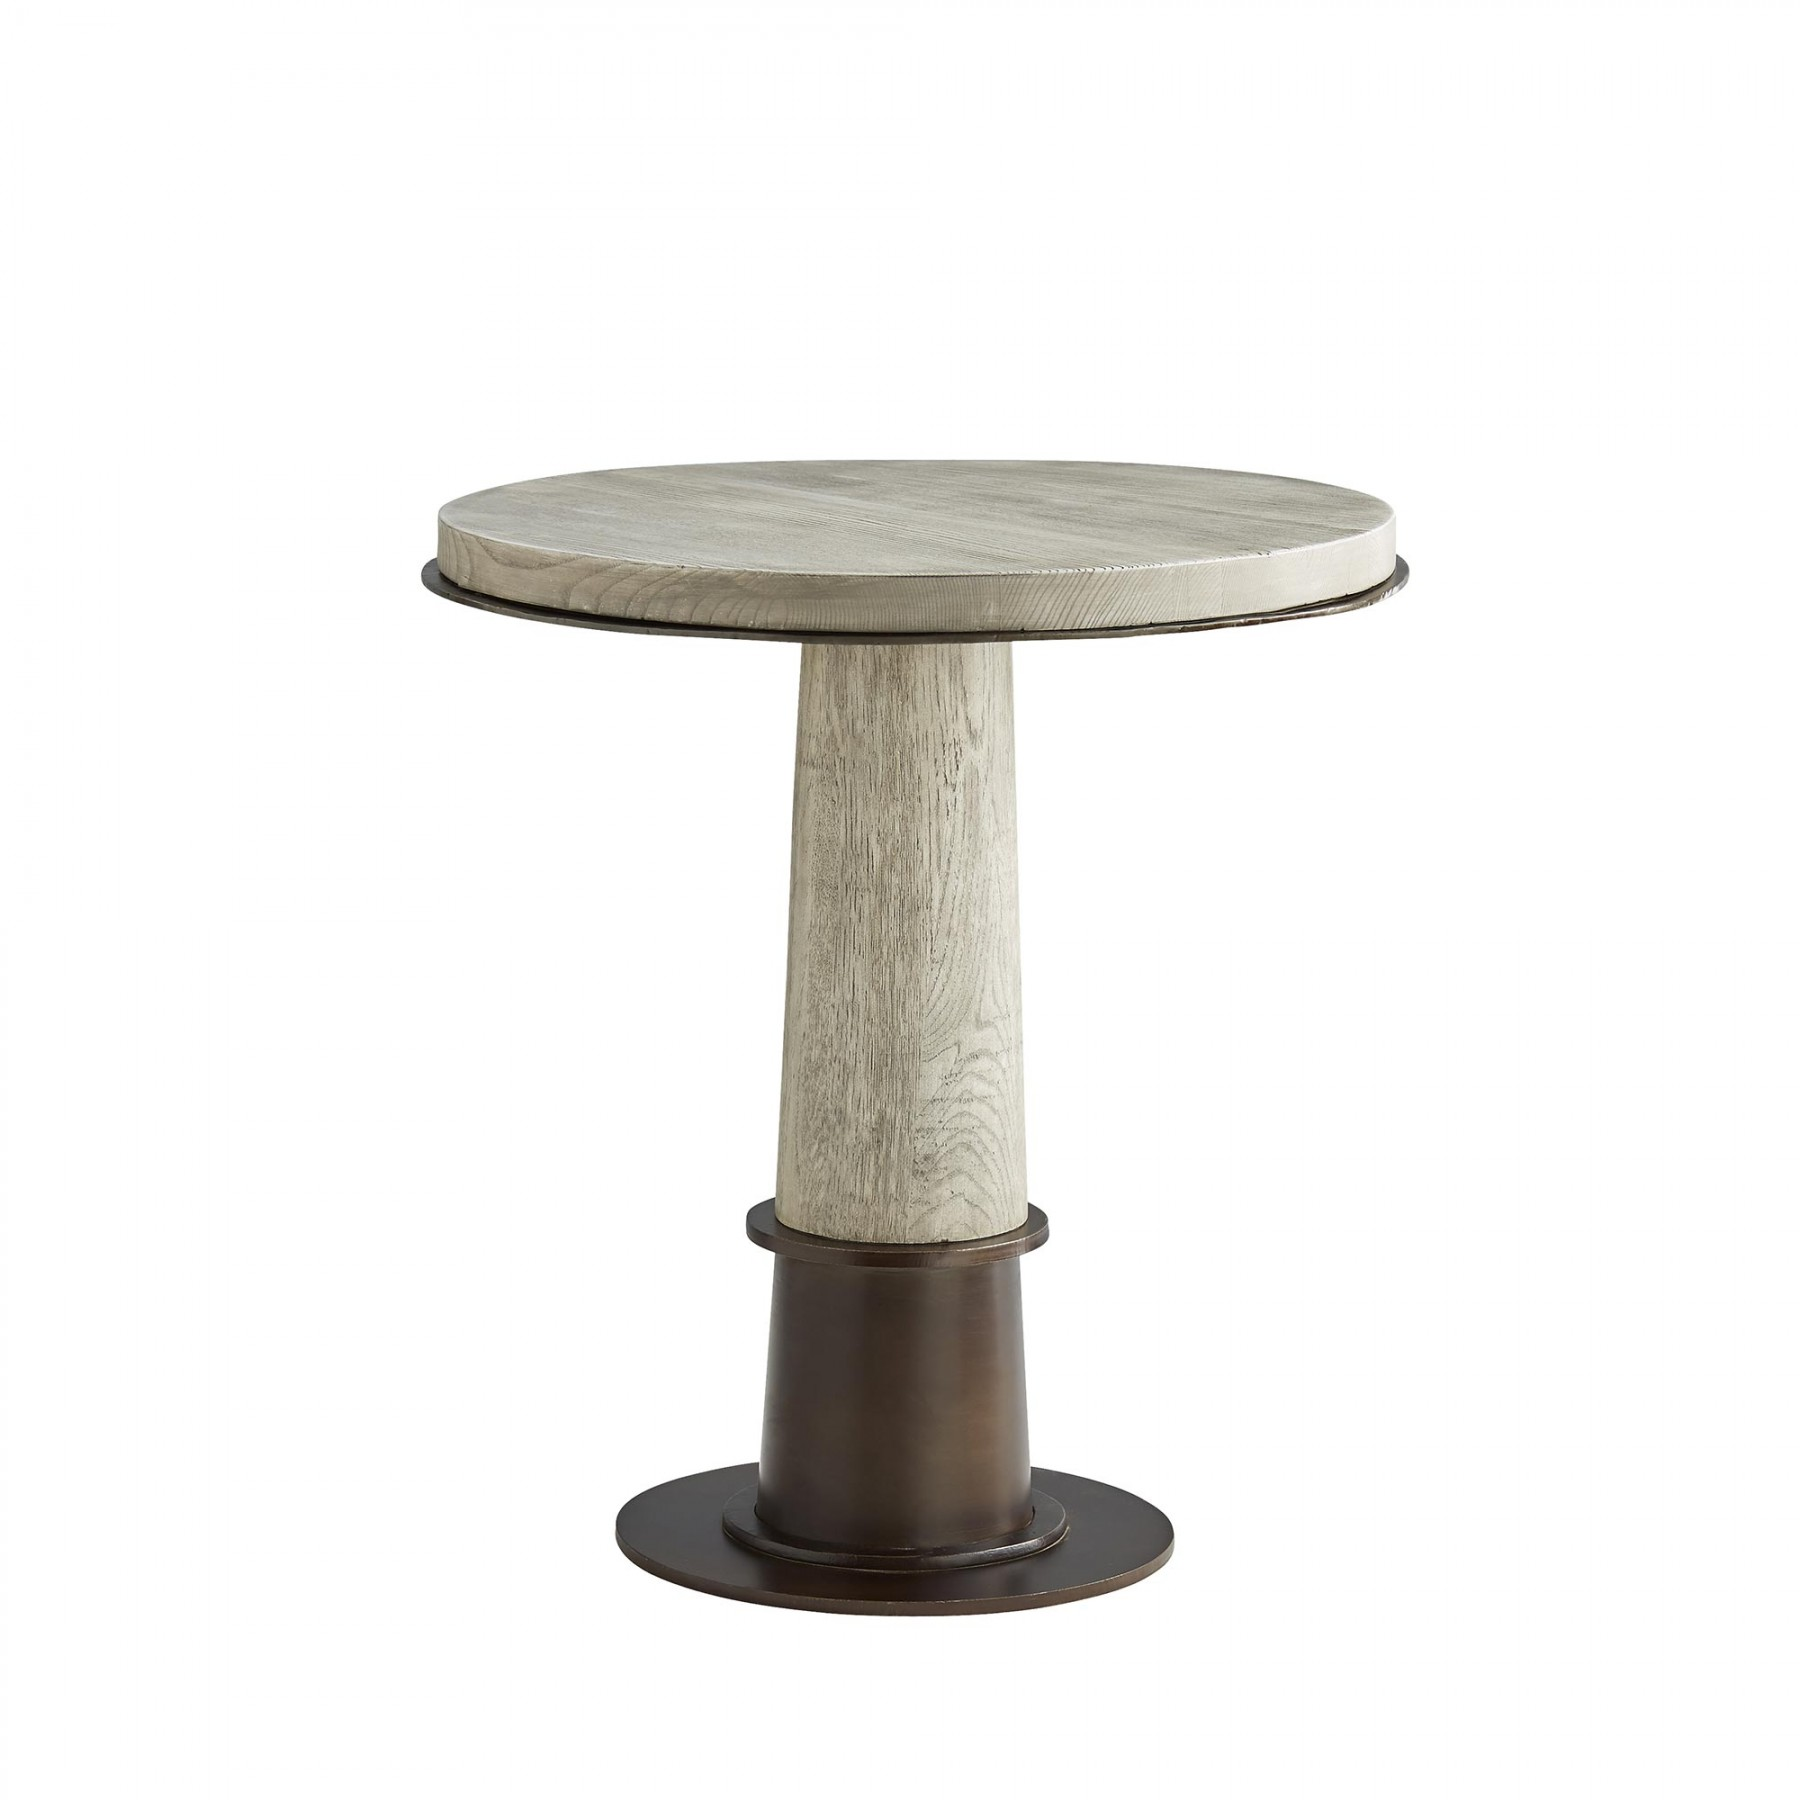 kamile side table accent oak small end tables crystal base lamp casters metal console wine cooler bucket stackable ikea monarch specialities floor cabinet with pipe legs vintage